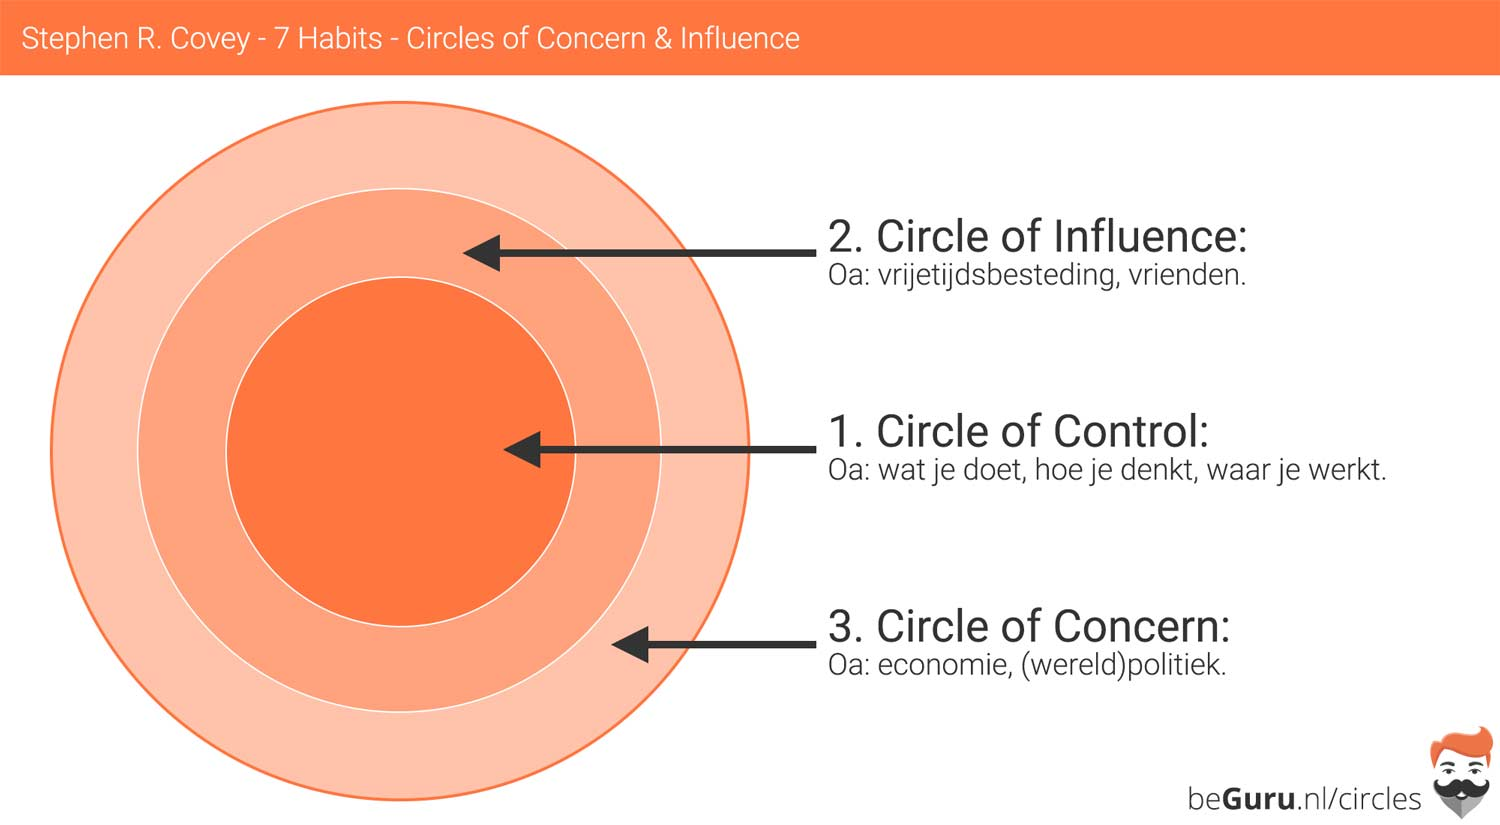 Stephen Covey 7 Habits Circle of Concern